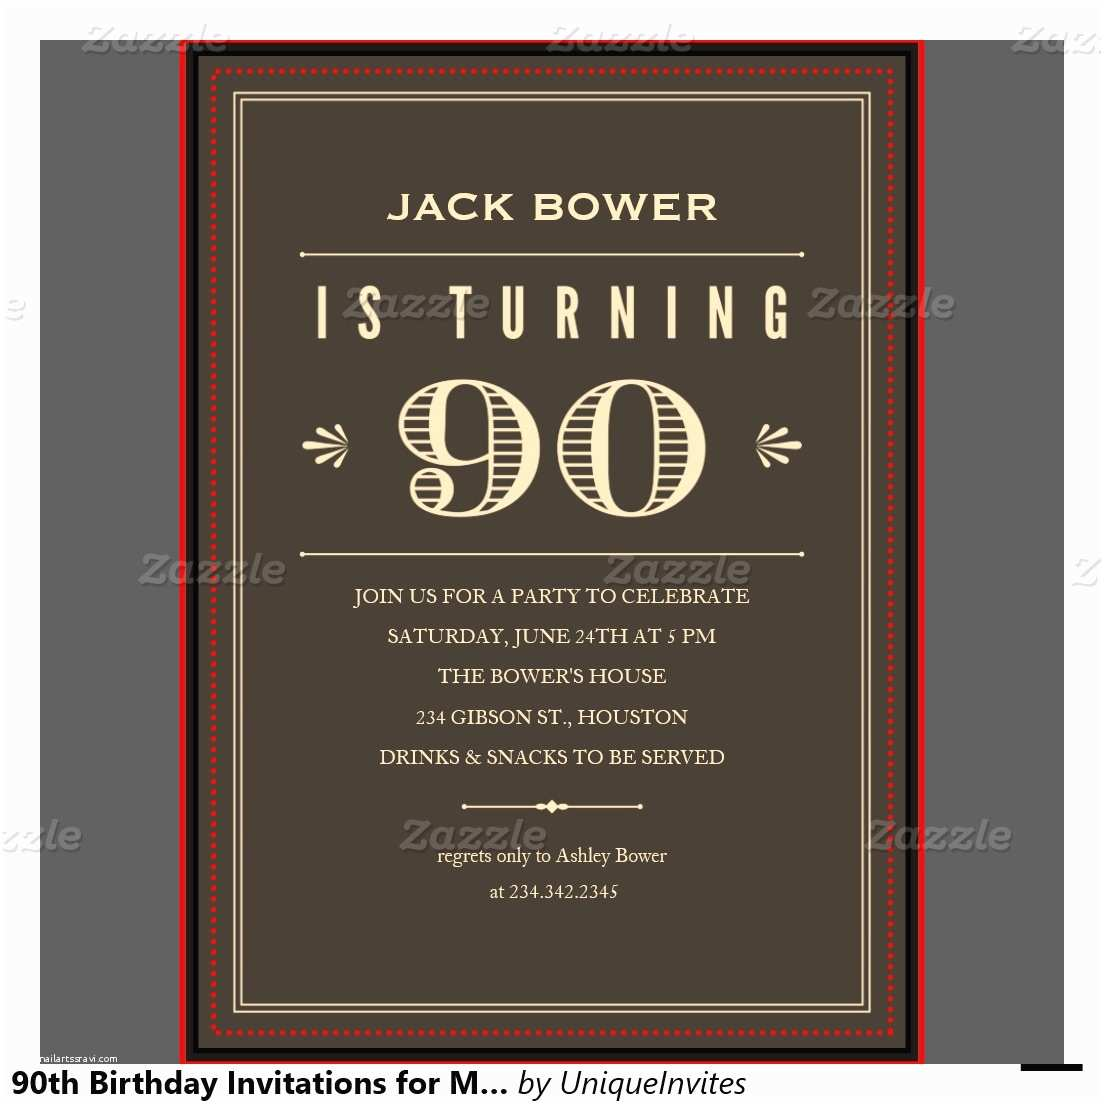 90th Birthday Party Invitations Free Printable